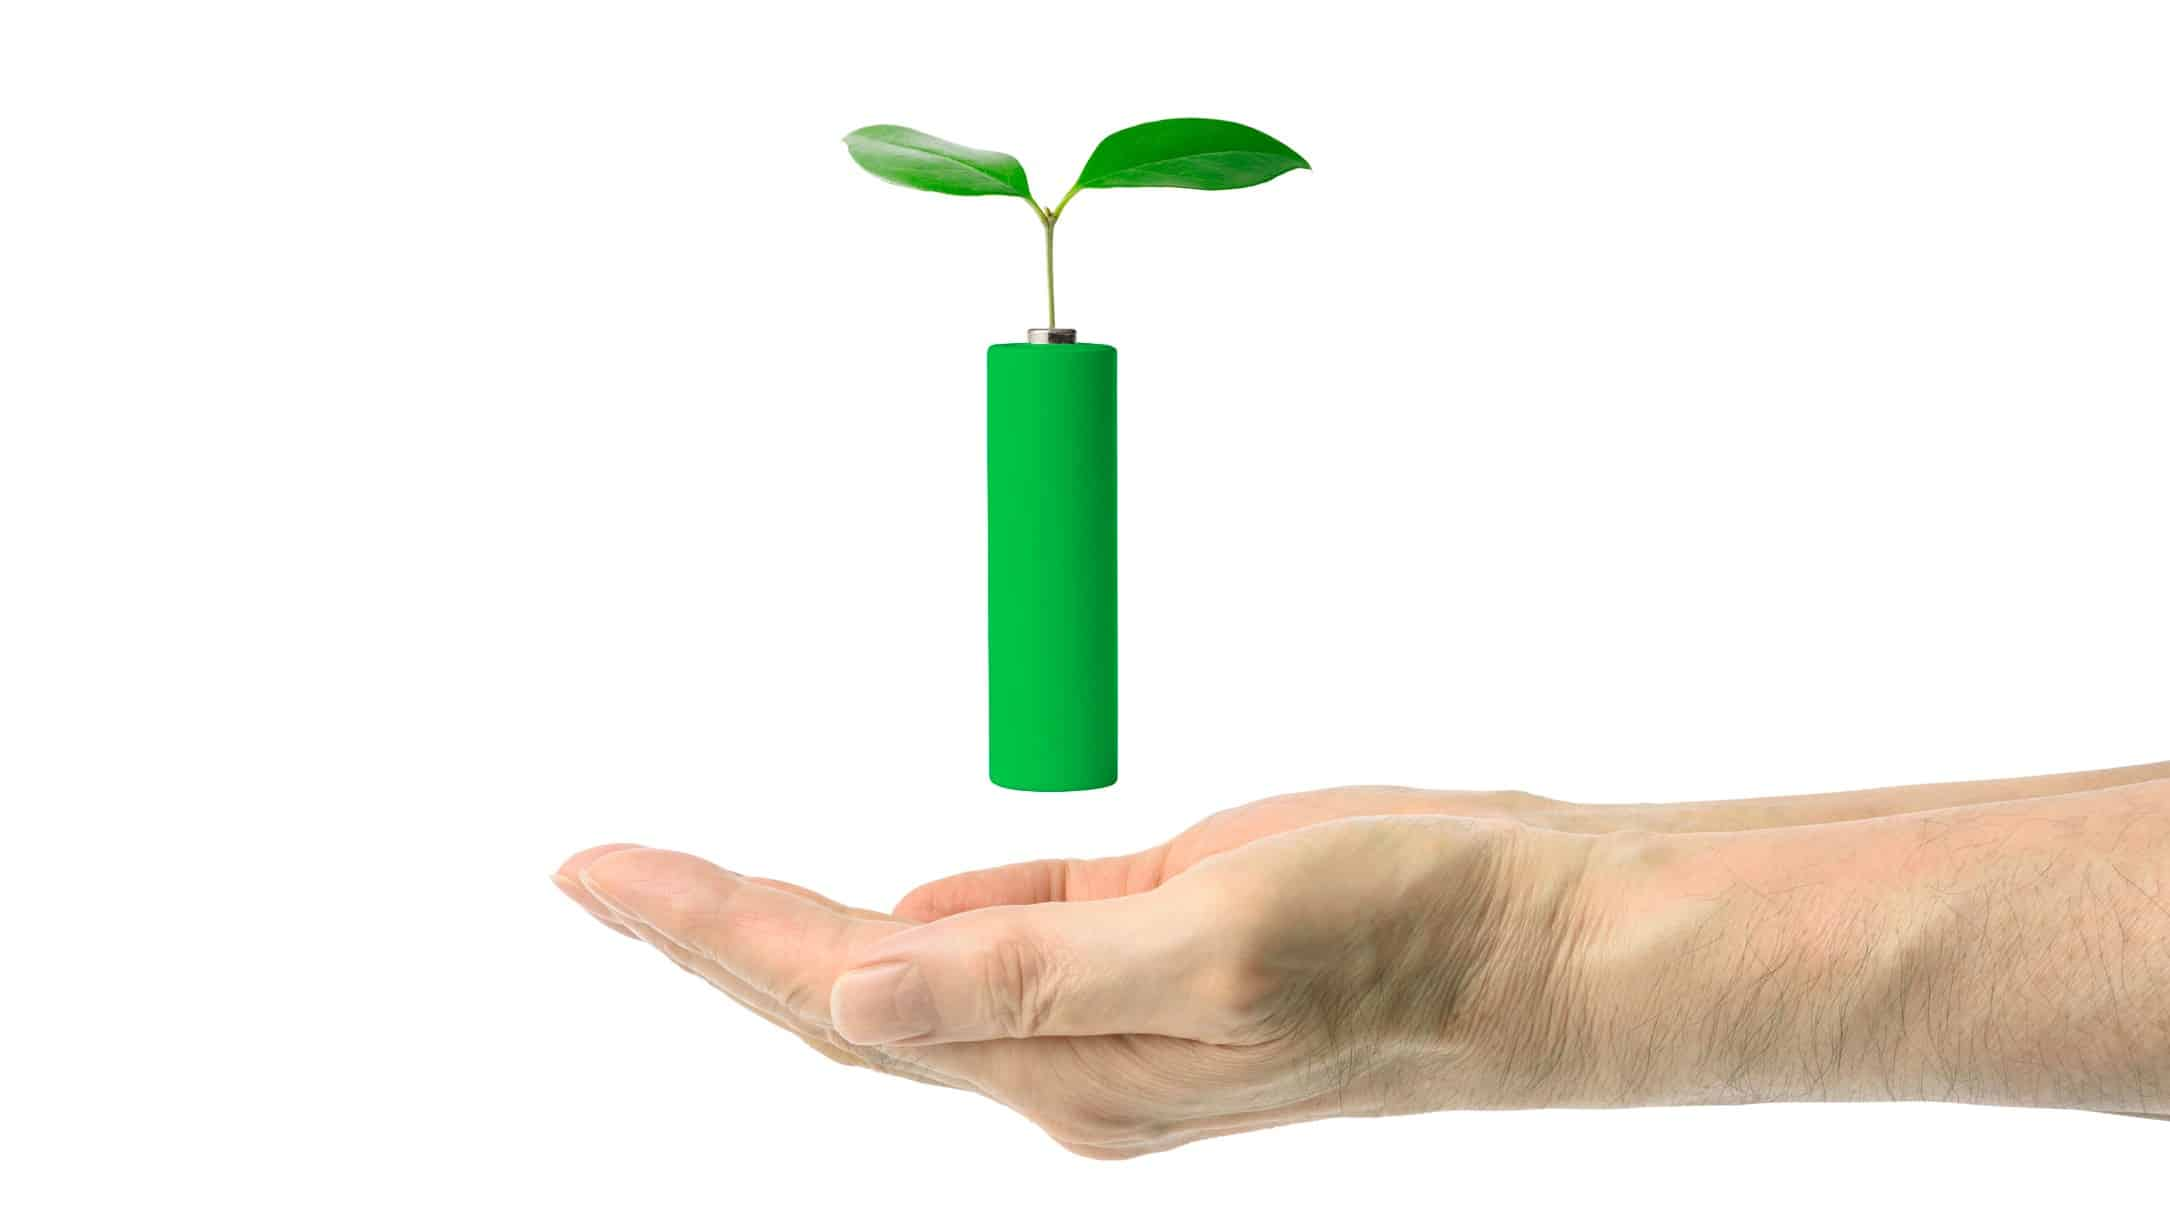 A hand holds a green lithium battery with a leaf, indicating positive share price movement for clean ASX lithium miners